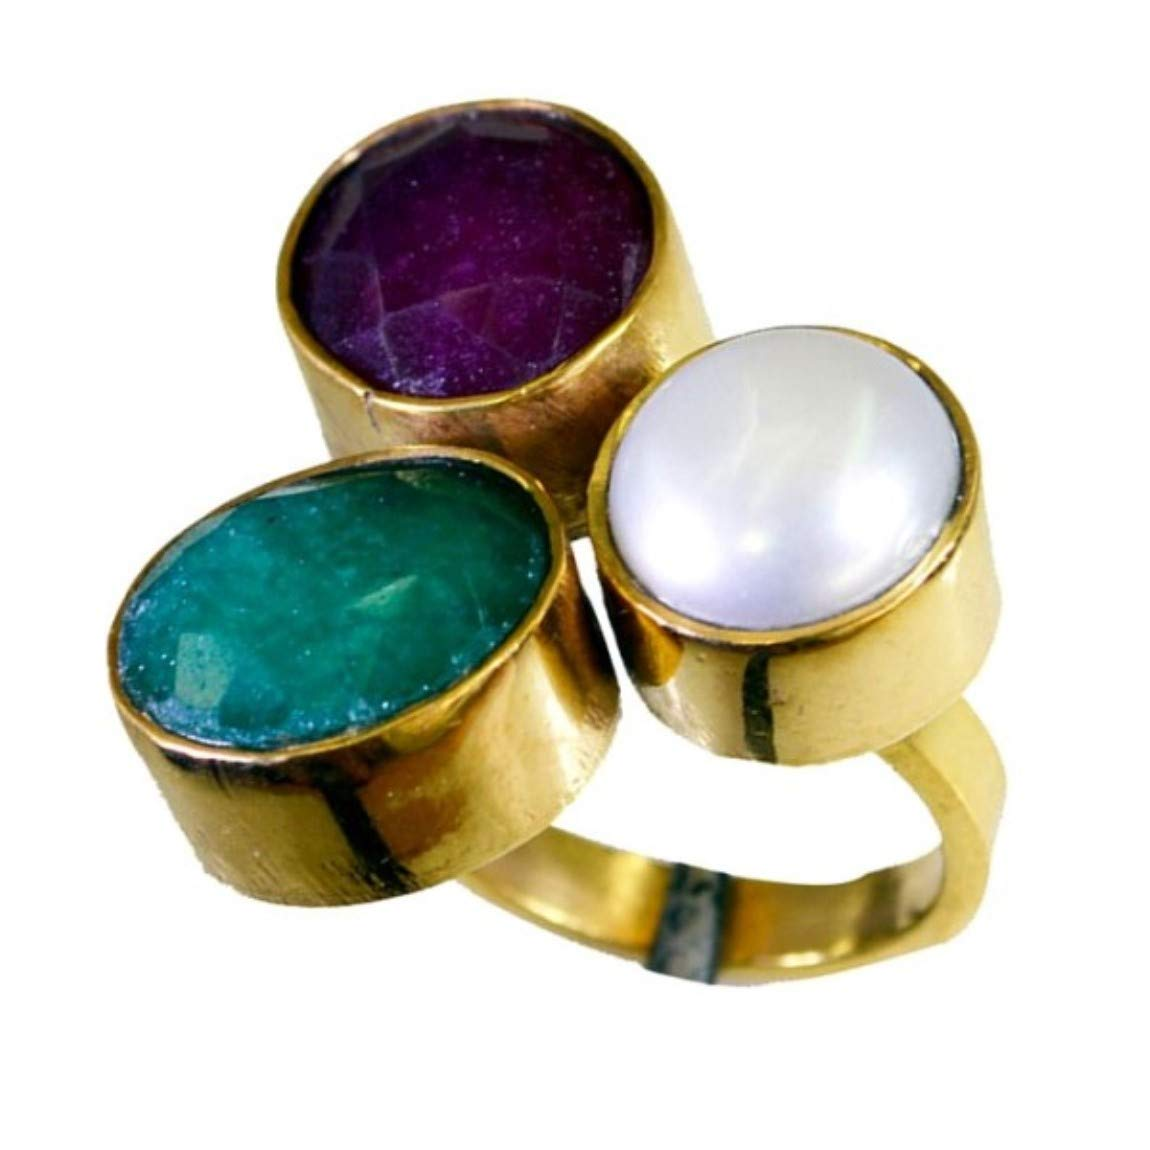 Jewelryonclick Real Multi Stone Gold Plated Wedding Rings for Her with Green White Red Stone Size 4-12